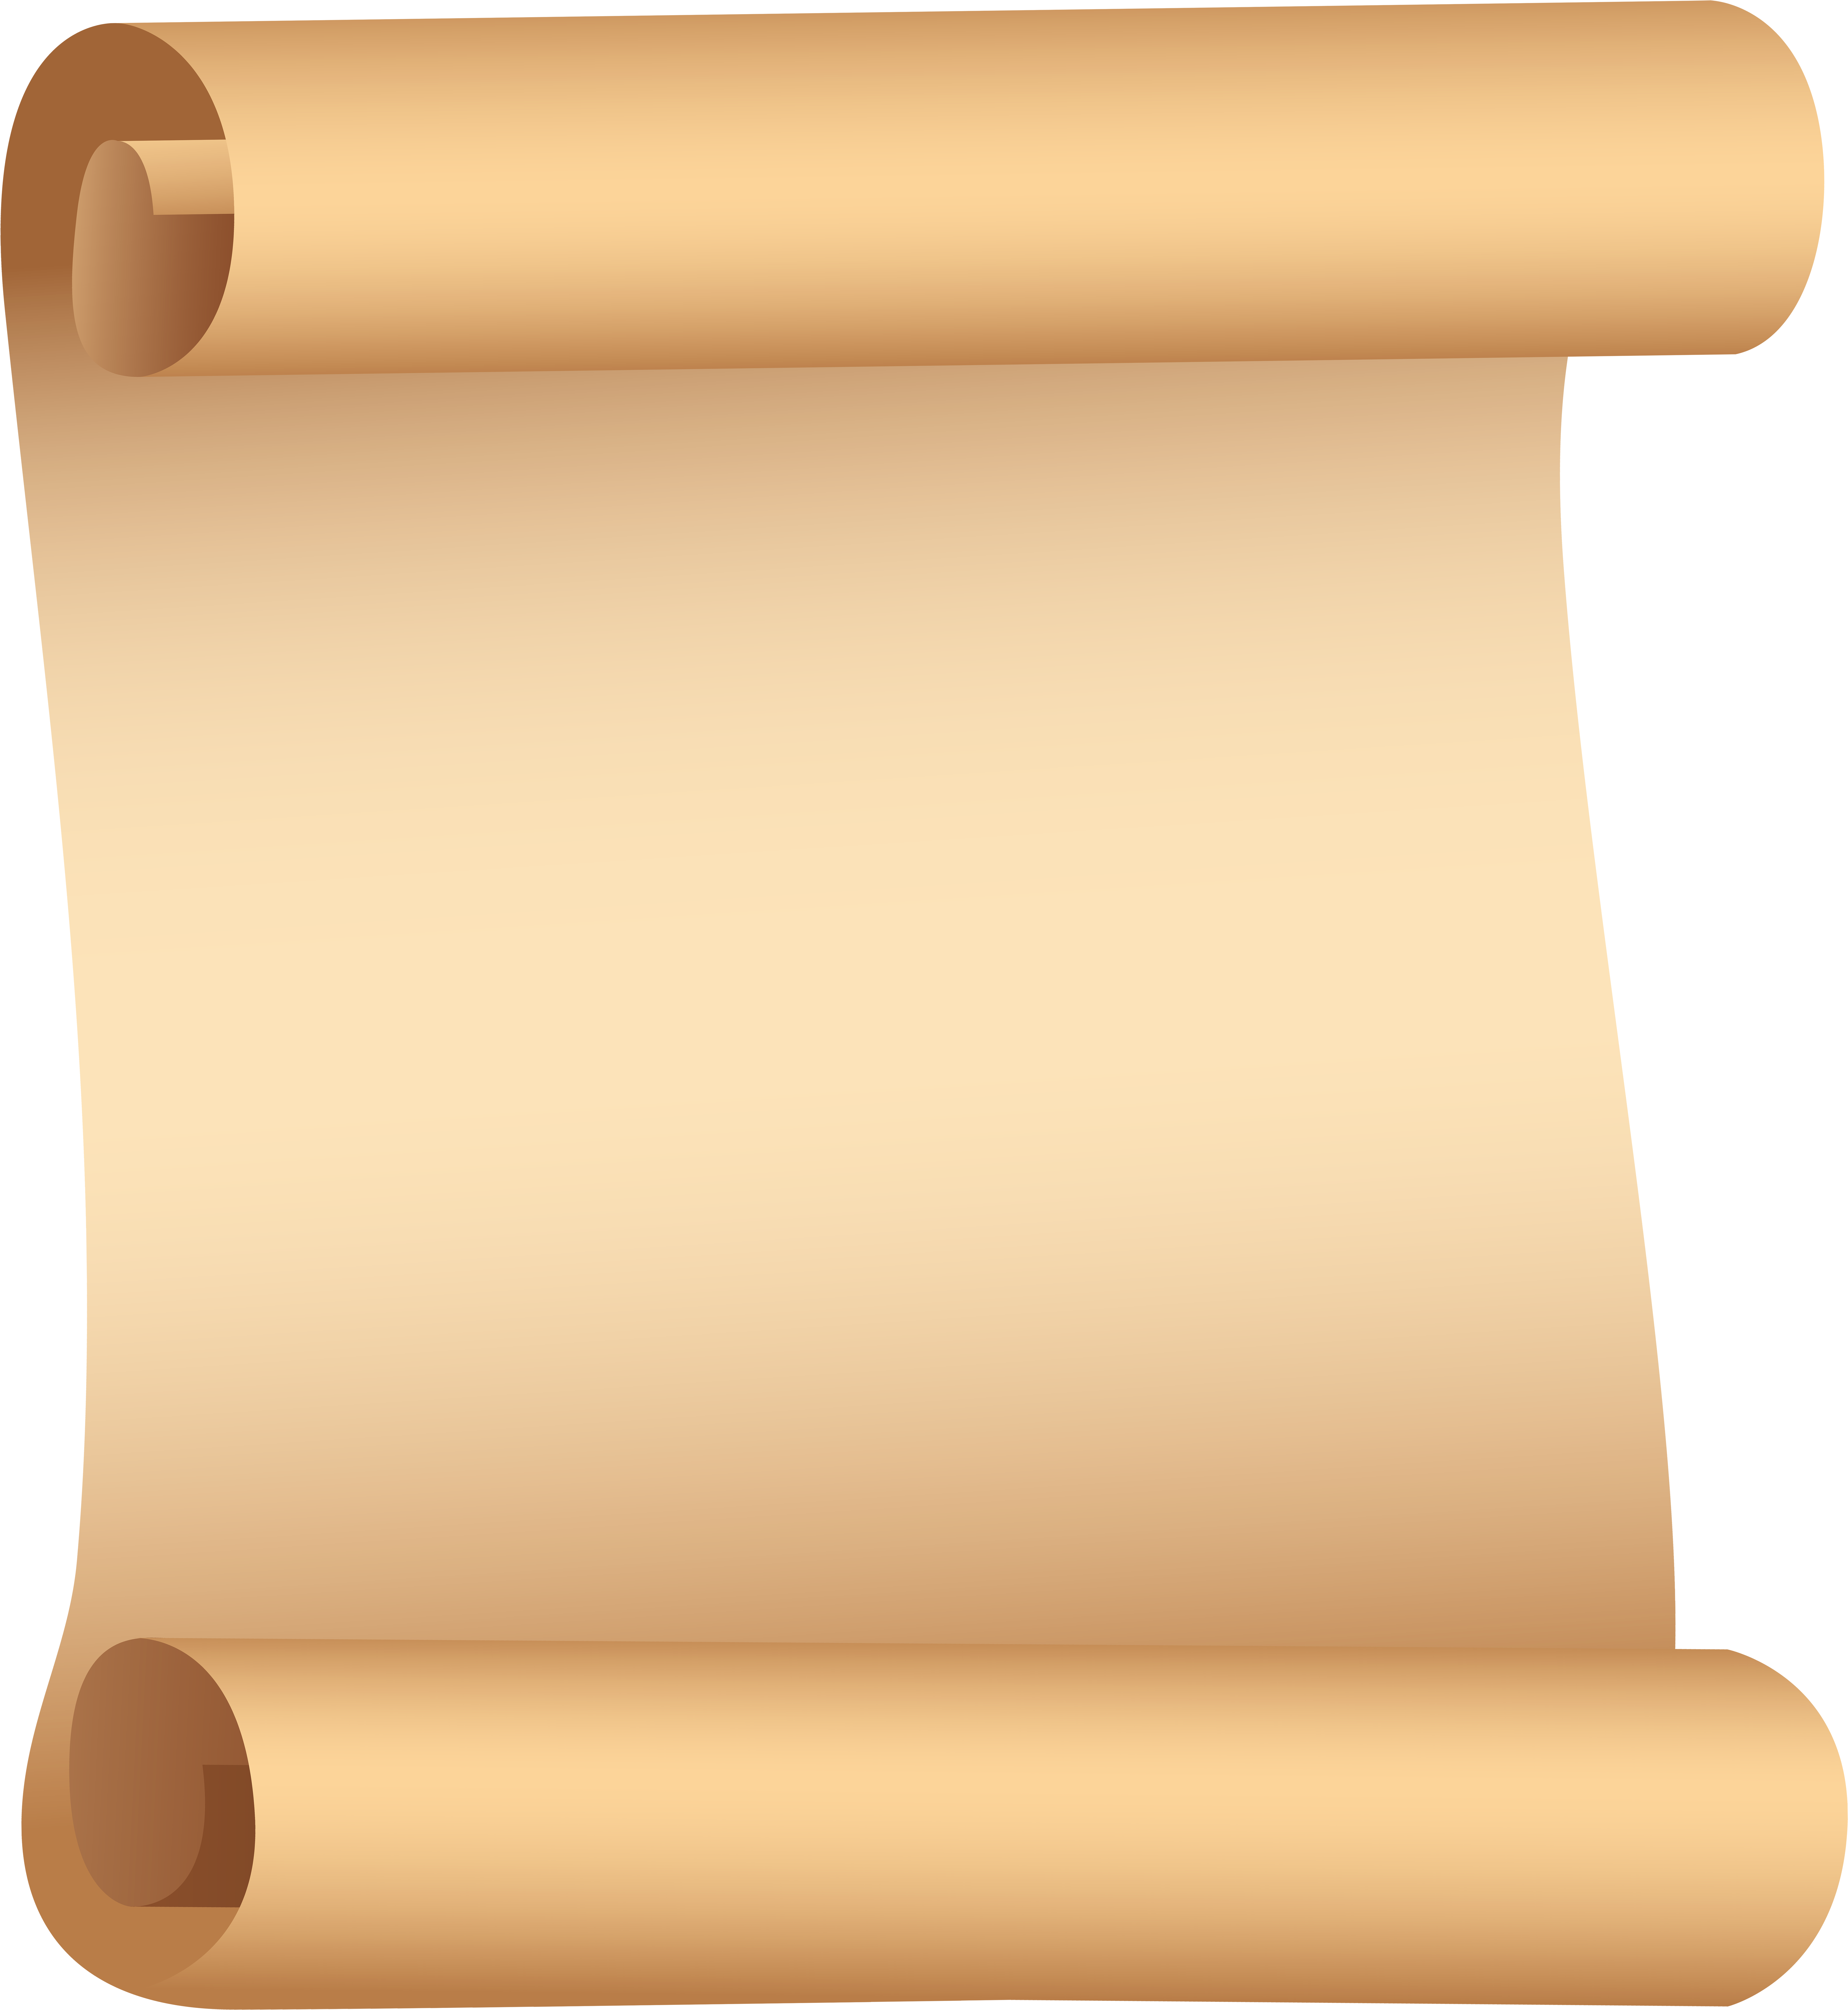 Paper scroll png. Download this image clipart